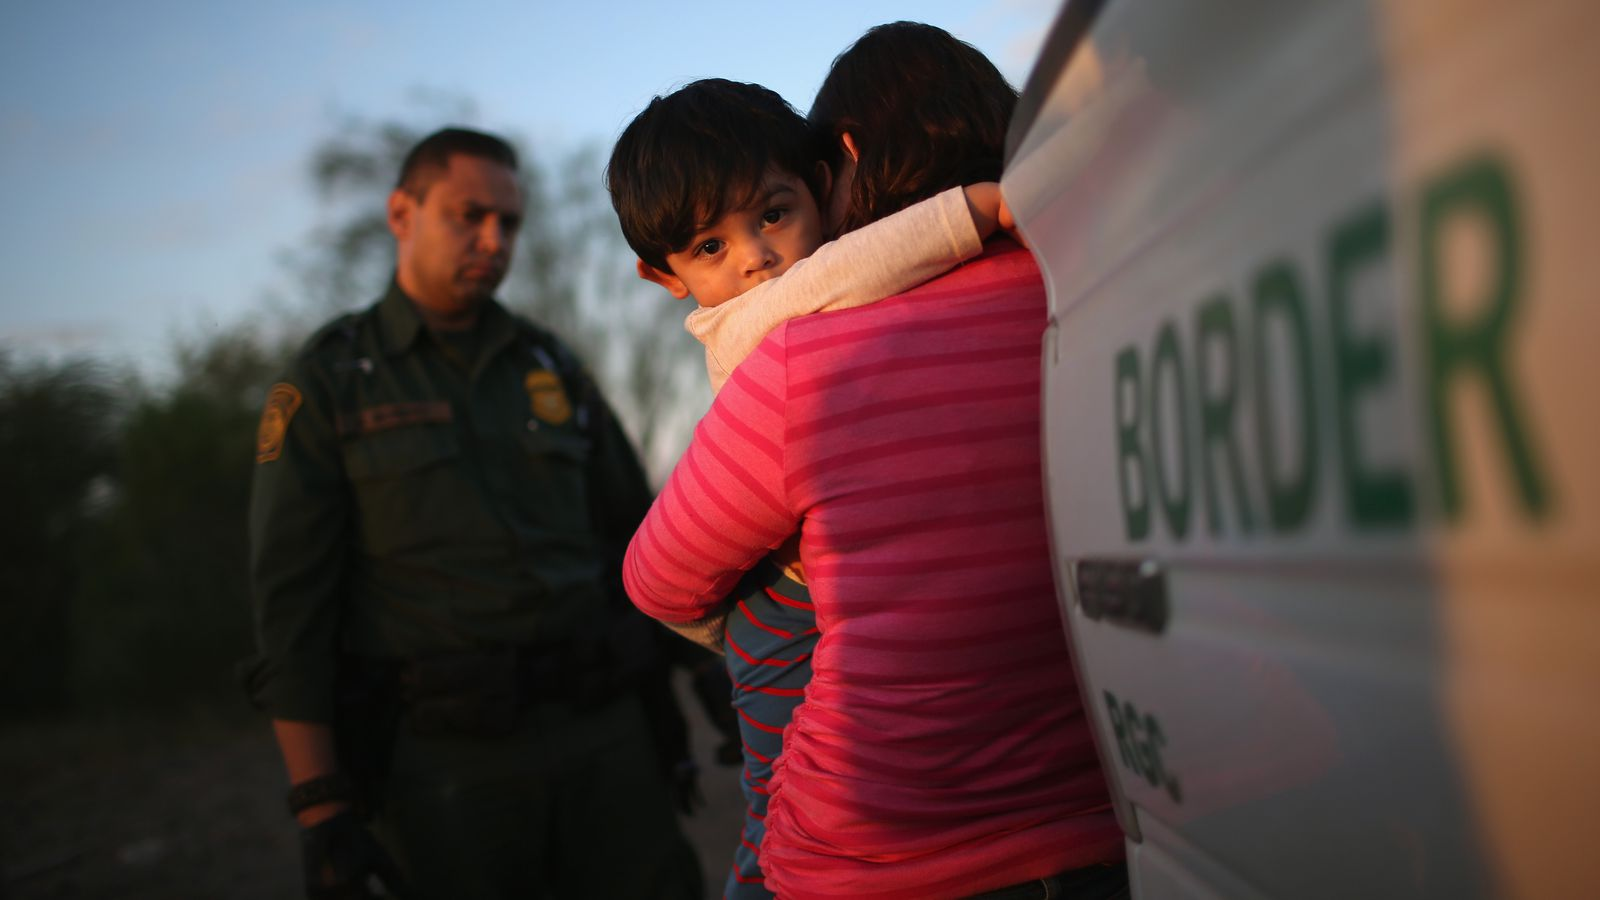 immigration agents take child from mom - HD1600×900